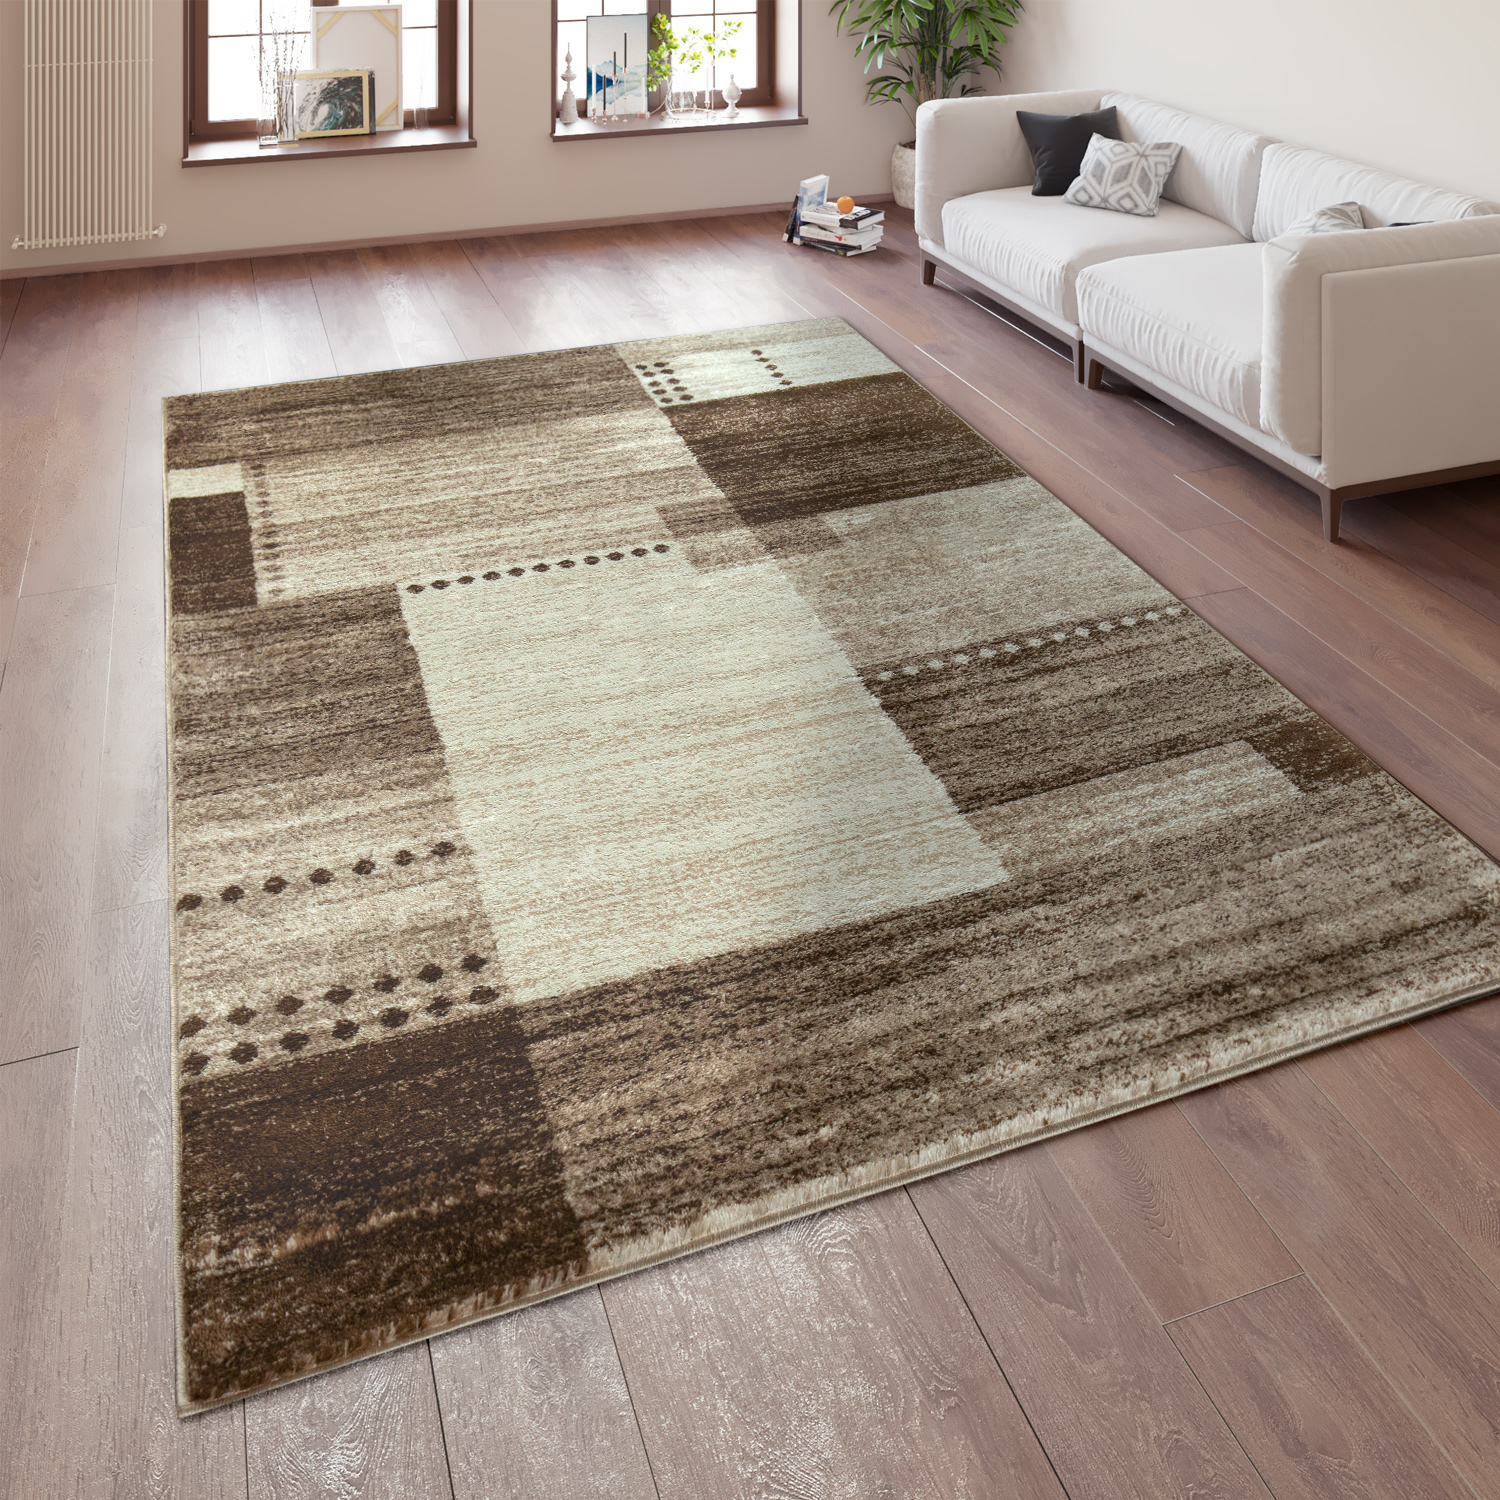 Designer Rug Checked Pattern Brown 001